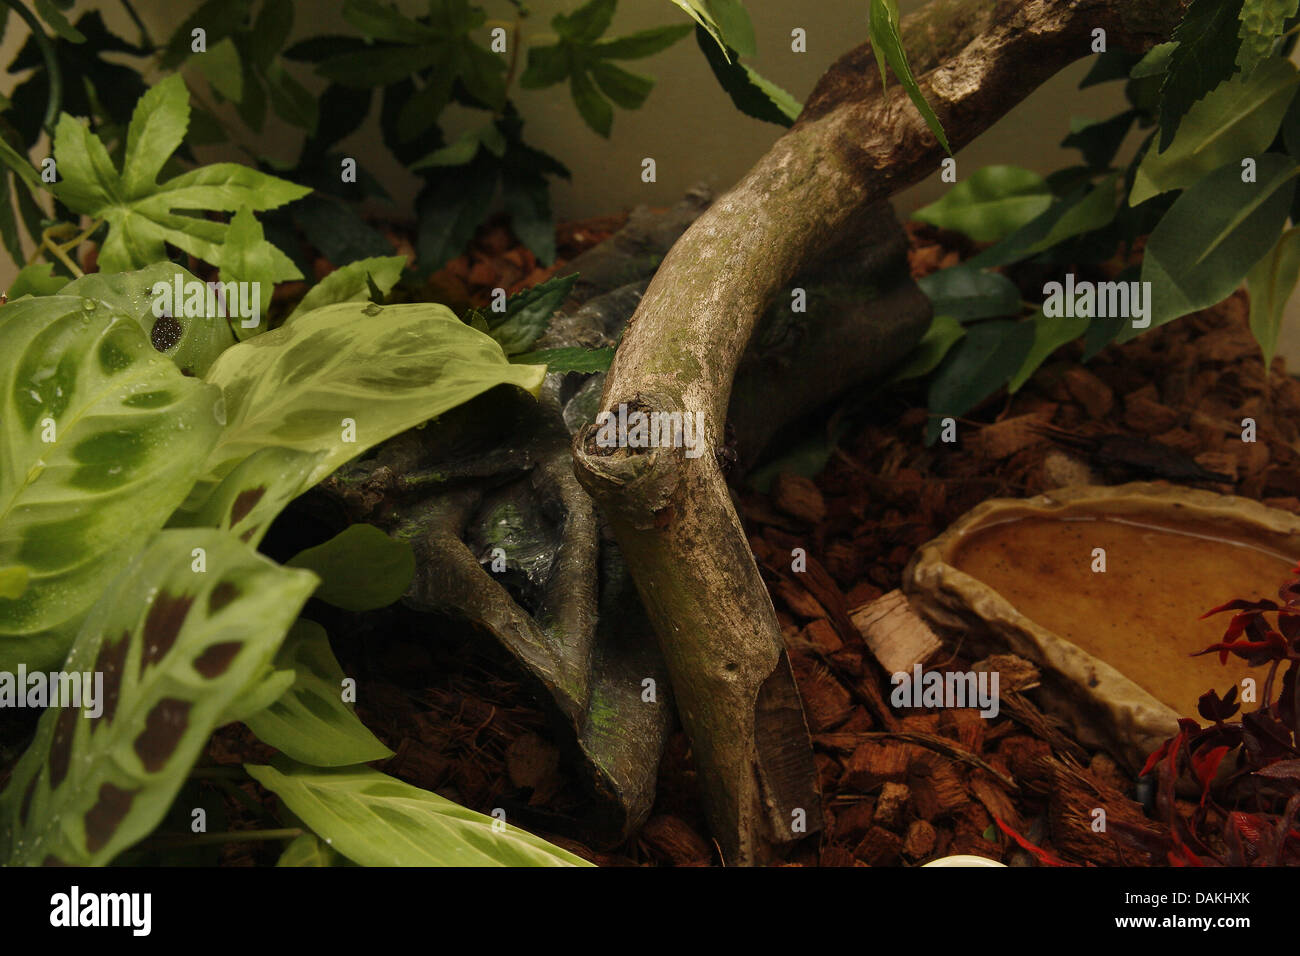 image of vivarium setup for geckos or amphibians - Stock Image